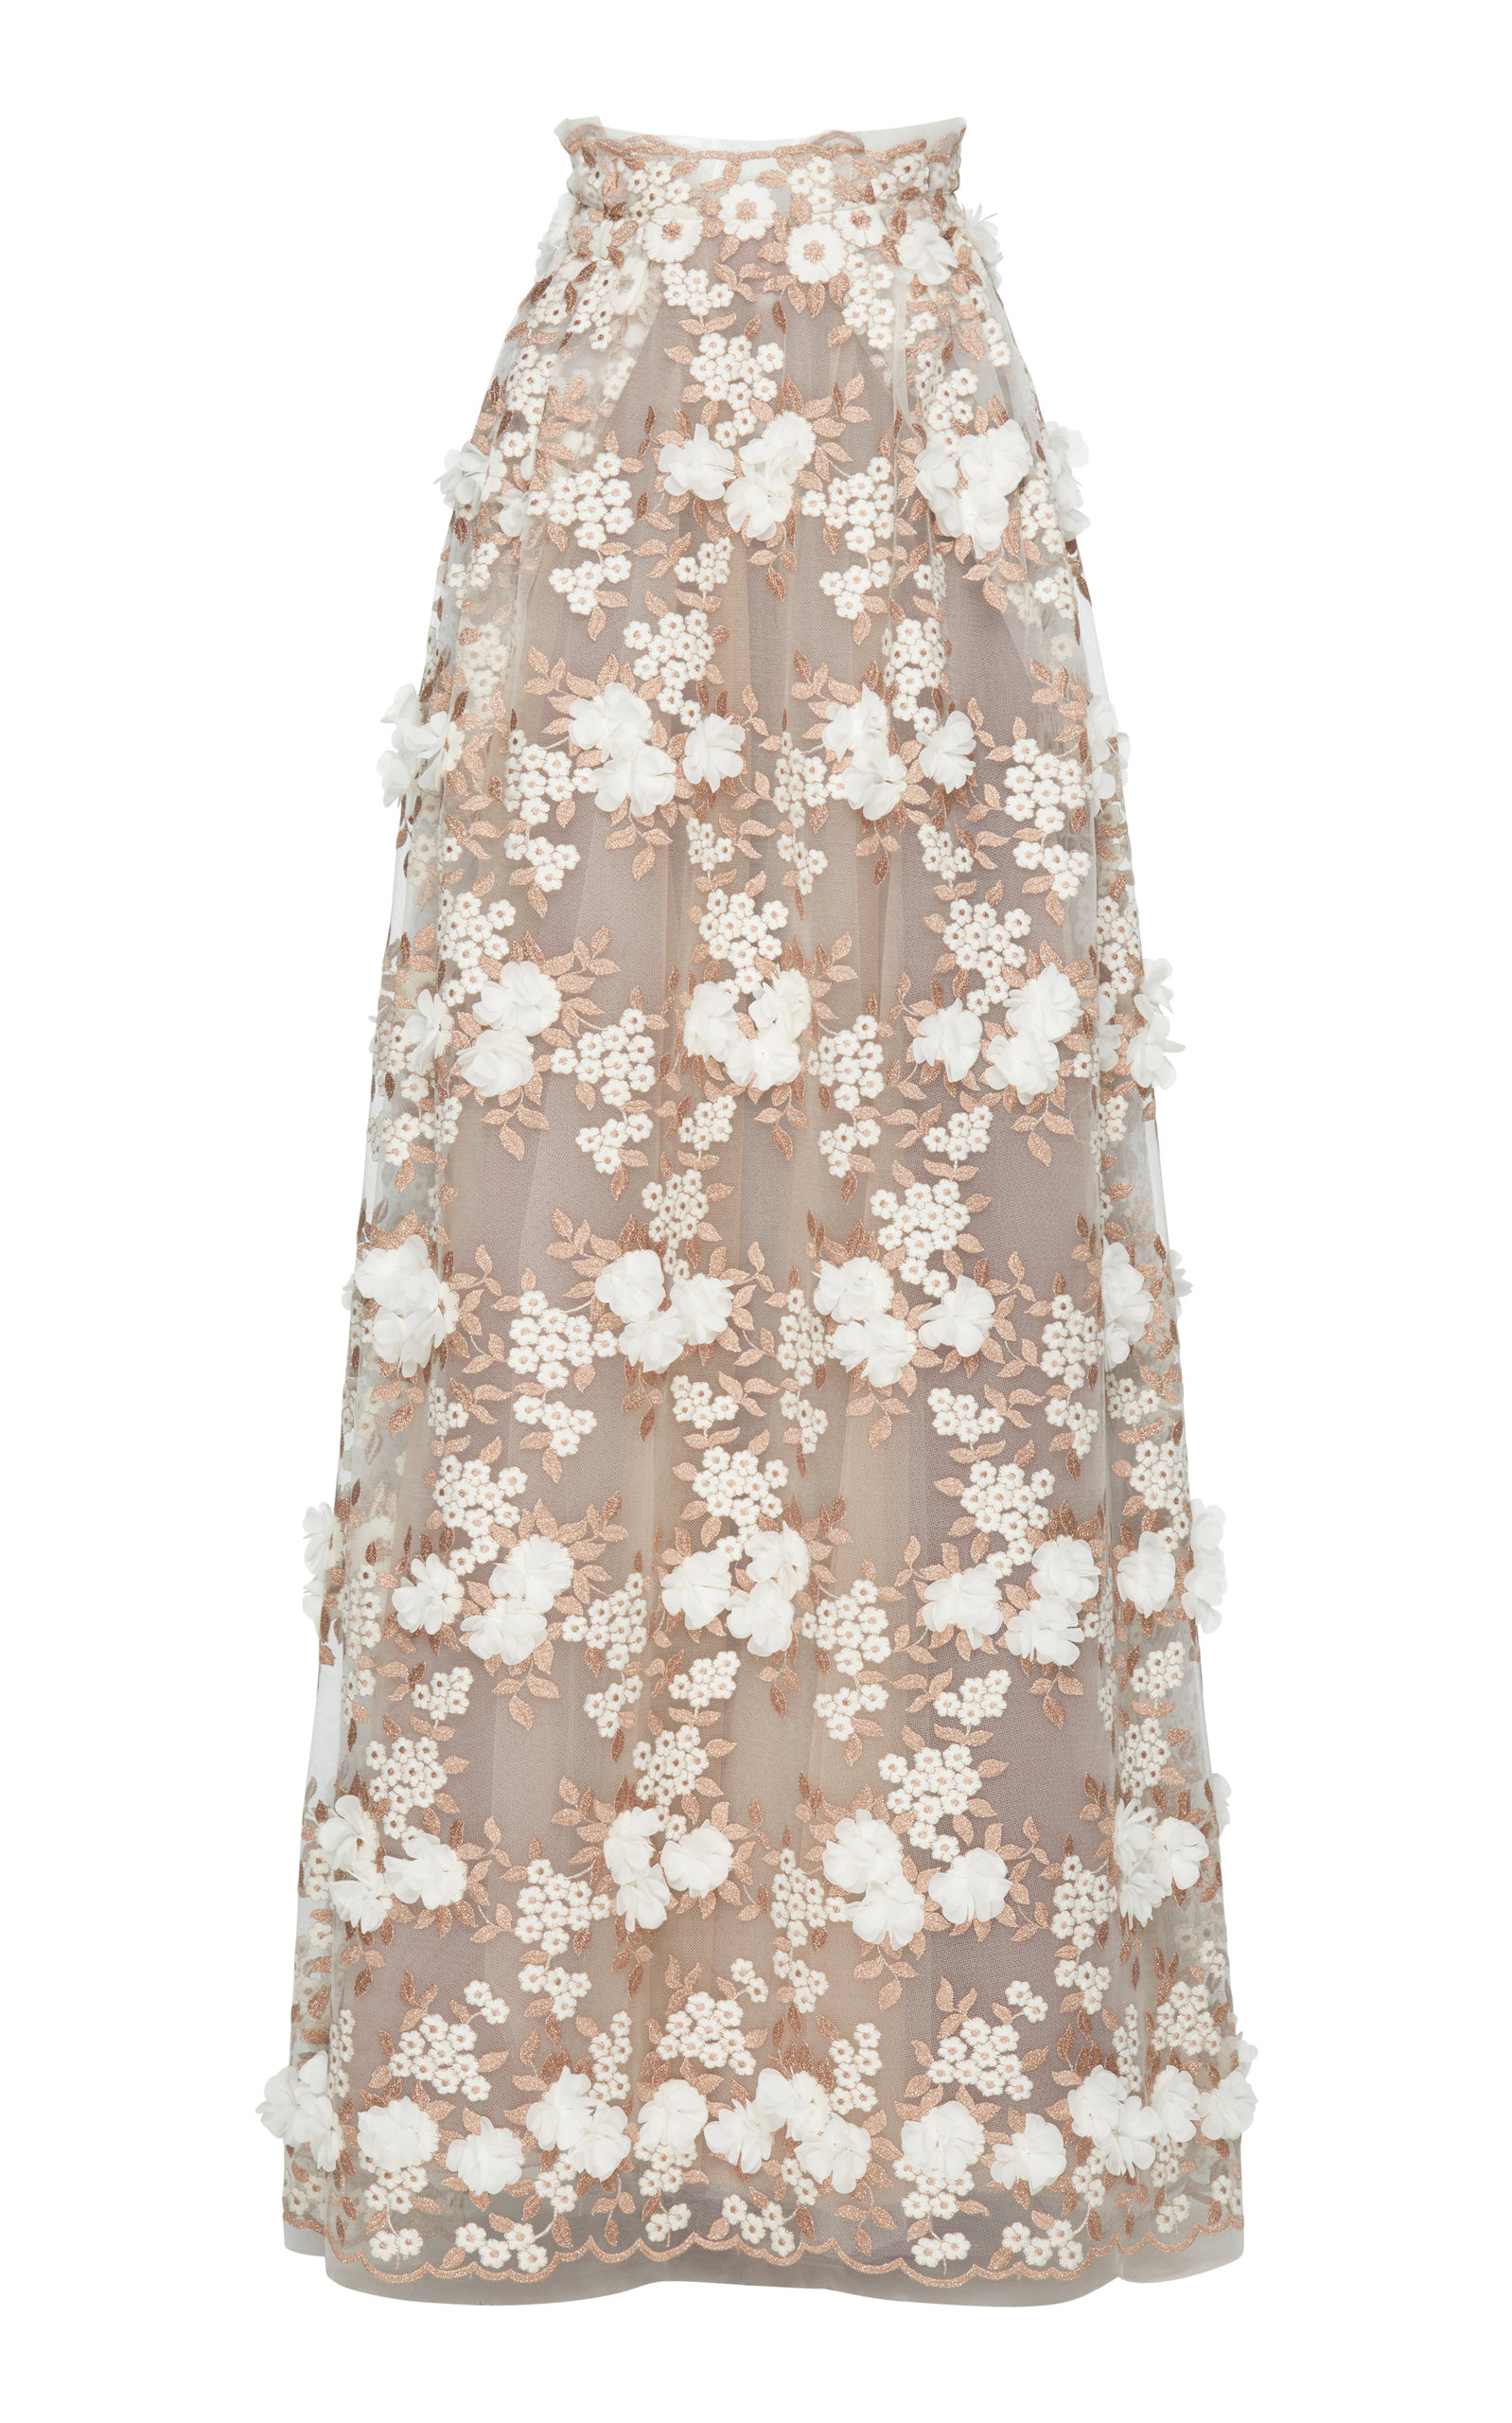 Tulle Embroidered Flowers Long Skirt by Luisa Beccaria | Moda Operandi